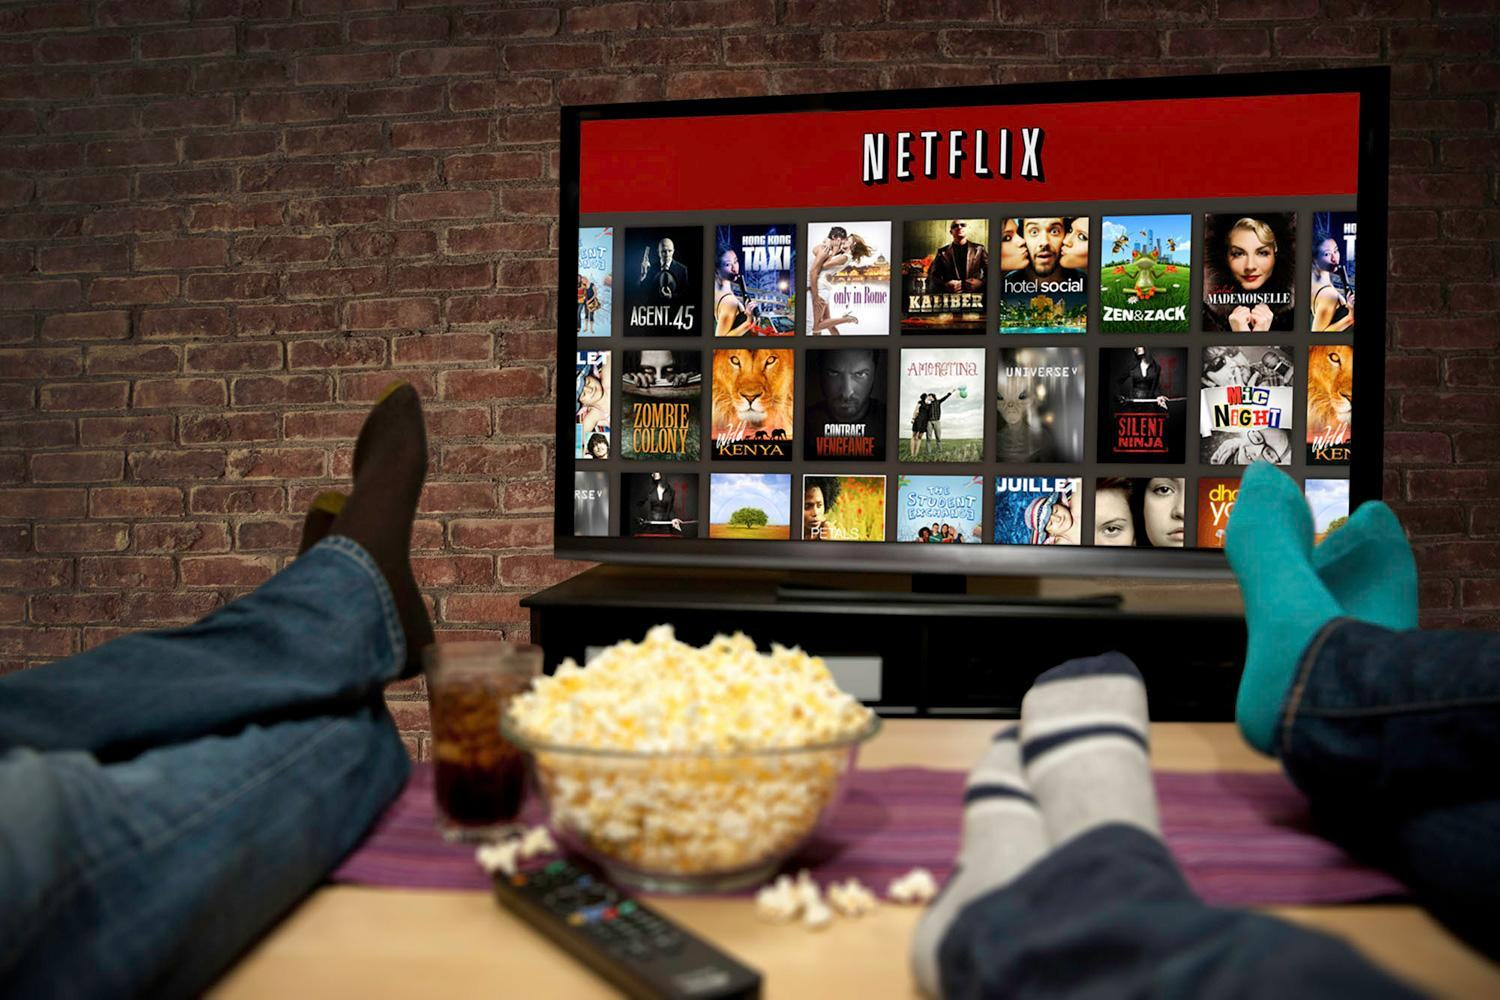 It Looks Like Bad News For People Streaming Foreign Netflix netflix100